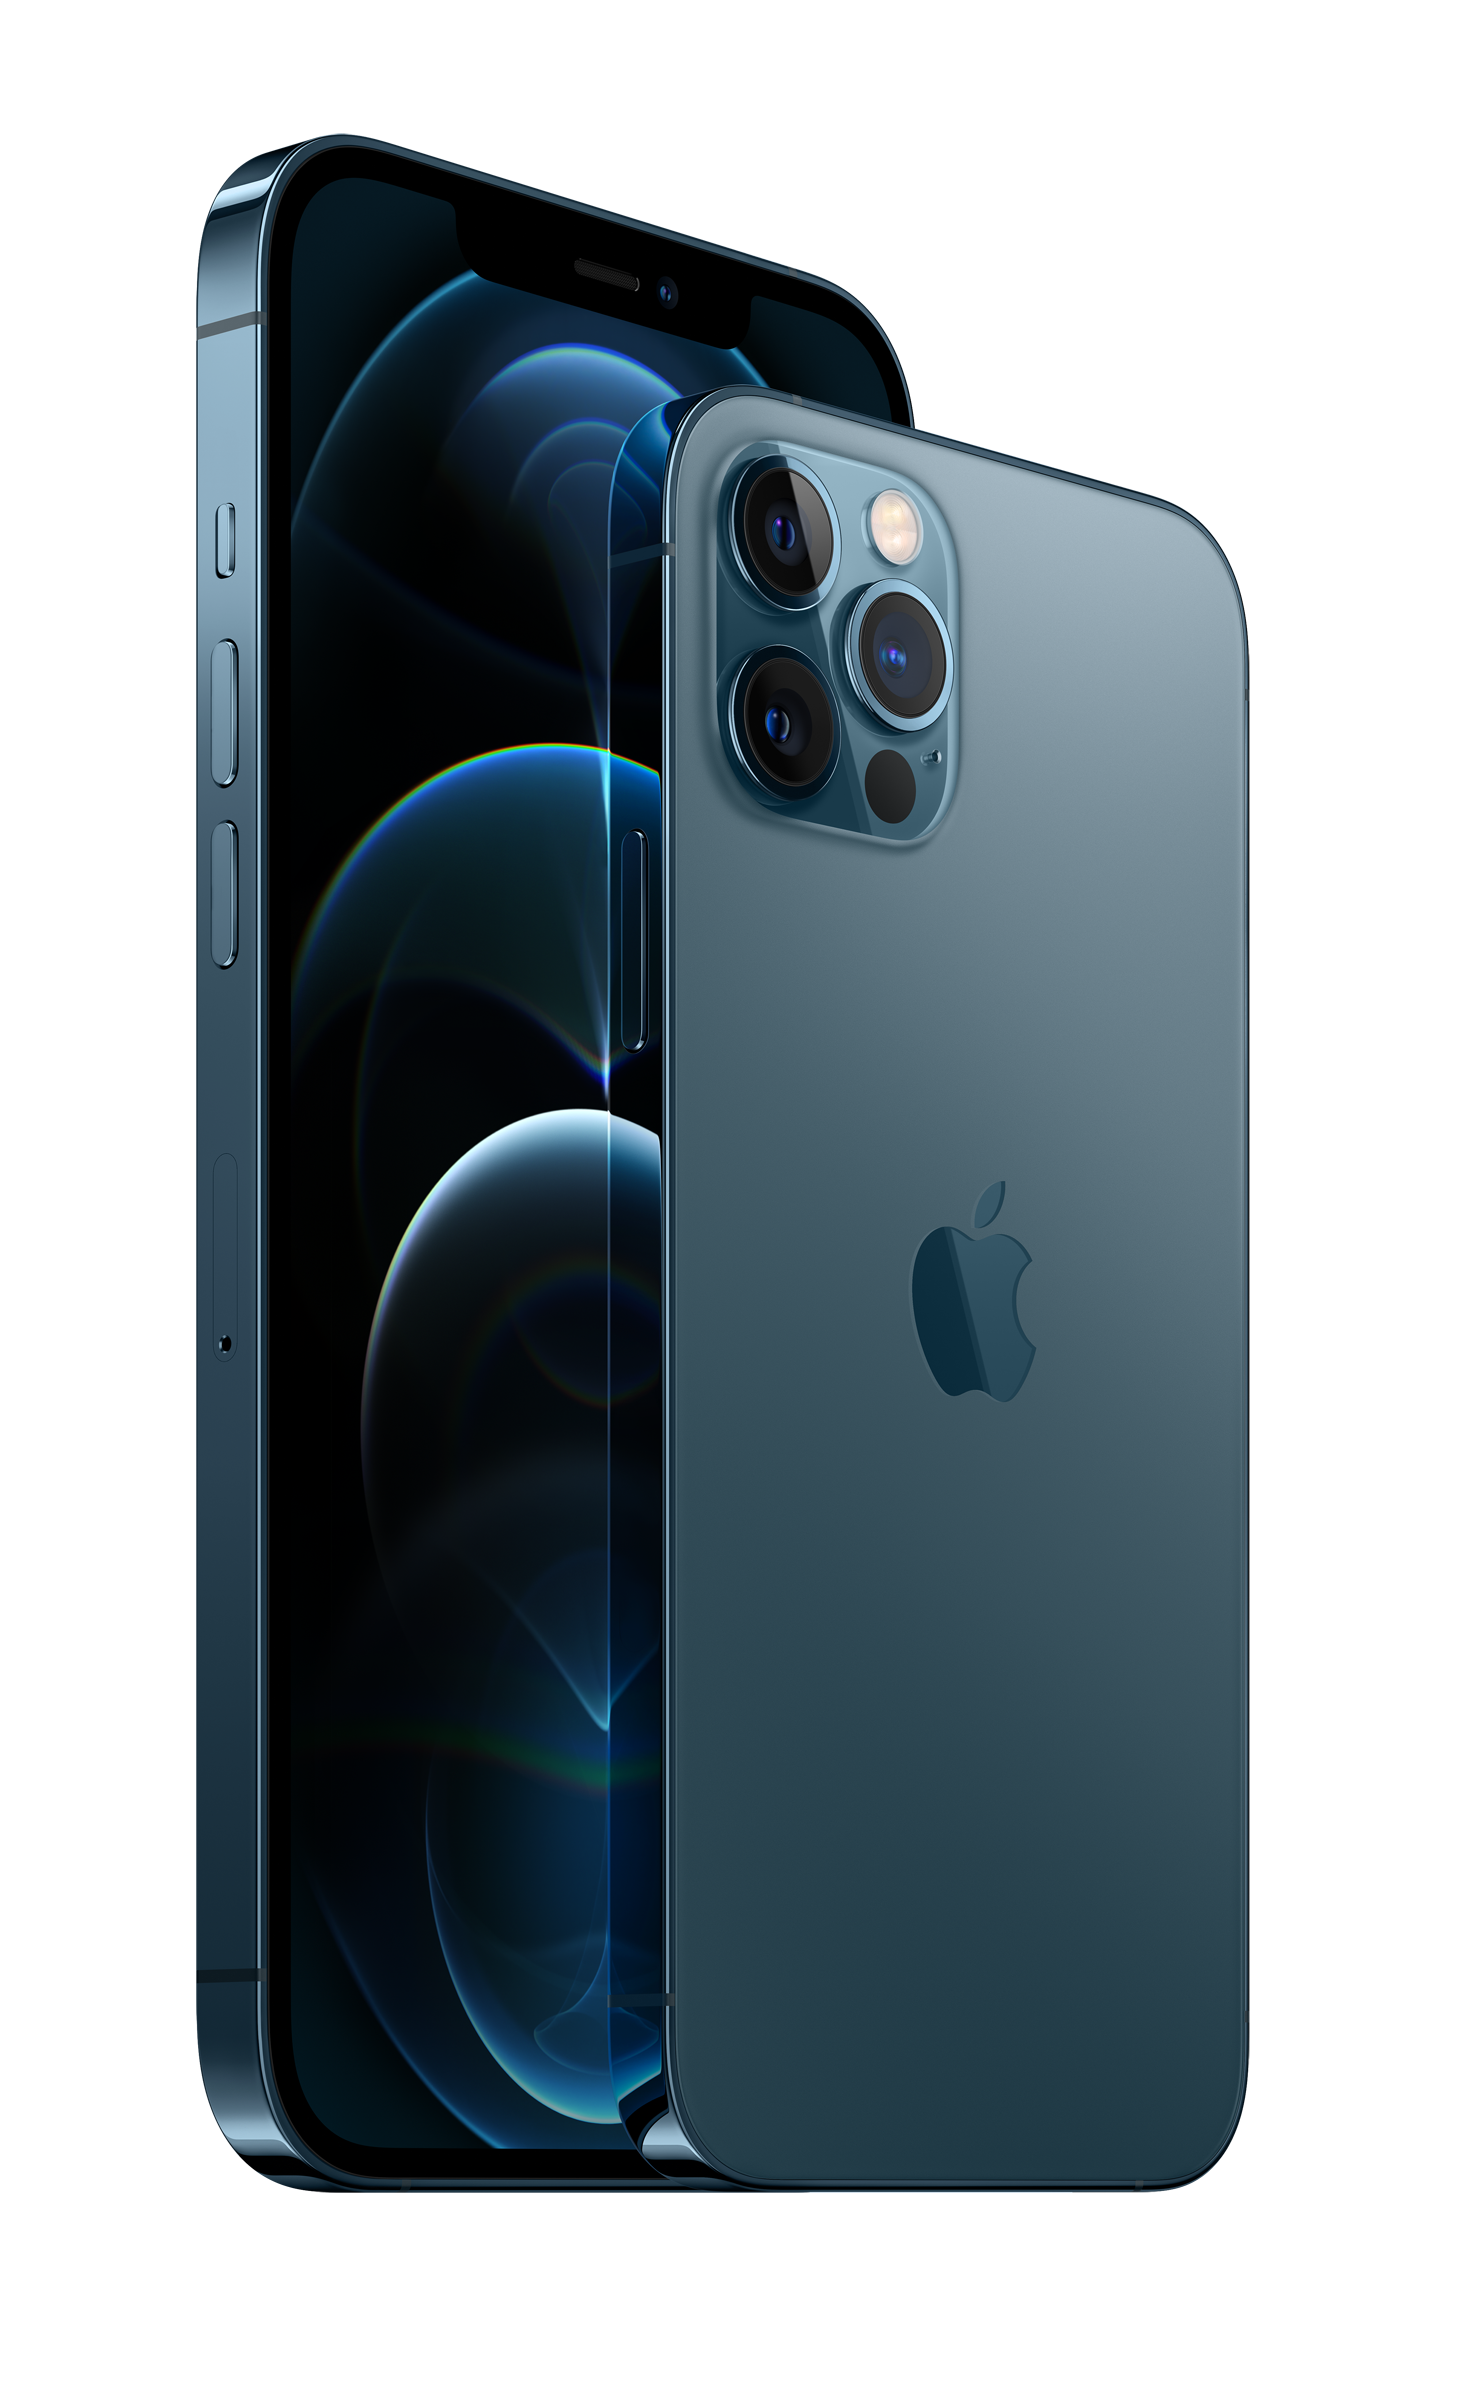 GEO-iPhone12ProMax-iPhone12Pro-pacific-blue-2up